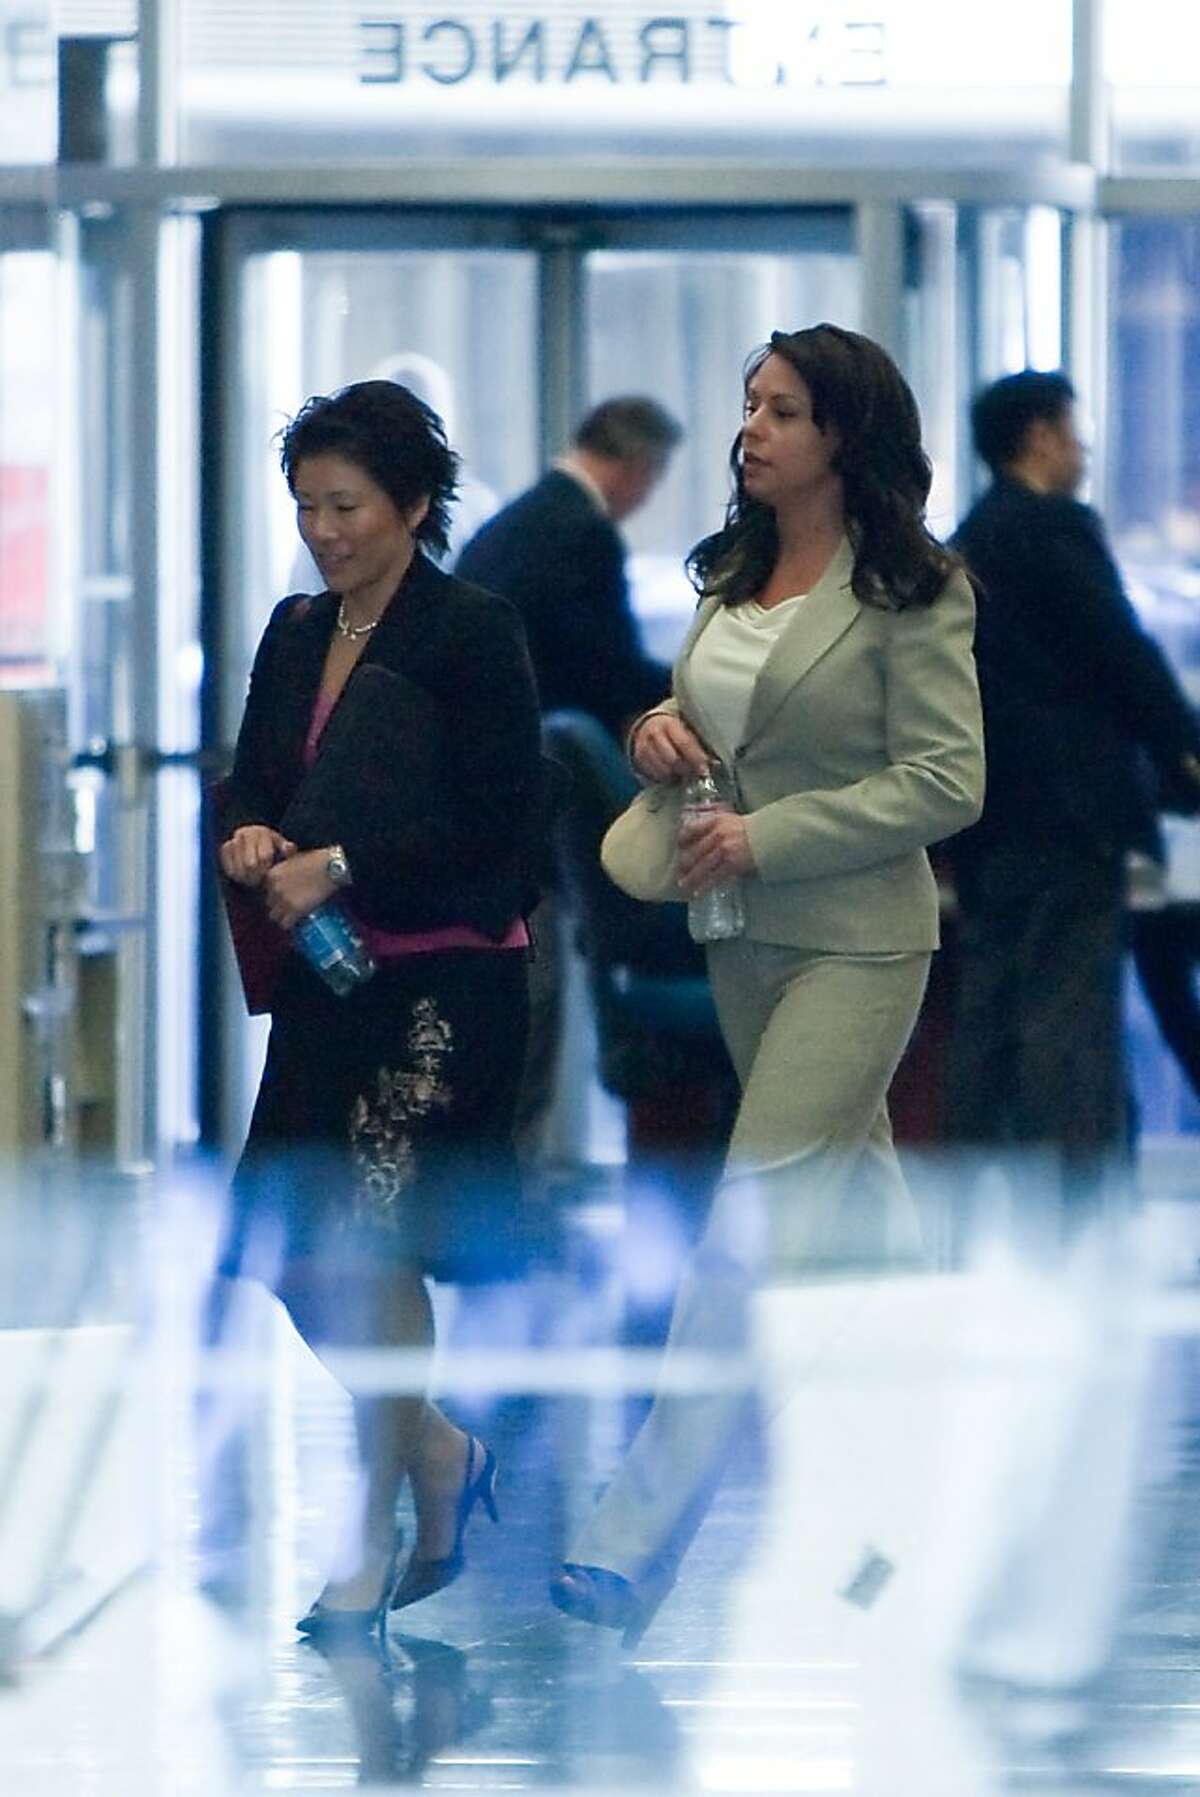 Kimberly Bell, (R) the former mistress of Barry Bonds leaves the Phillip Burton Federal Building and United States Court House with an unidentified woman after testifying in the Barry Bonds perjury trial on March 28, 2011 in San Francisco, Calif.